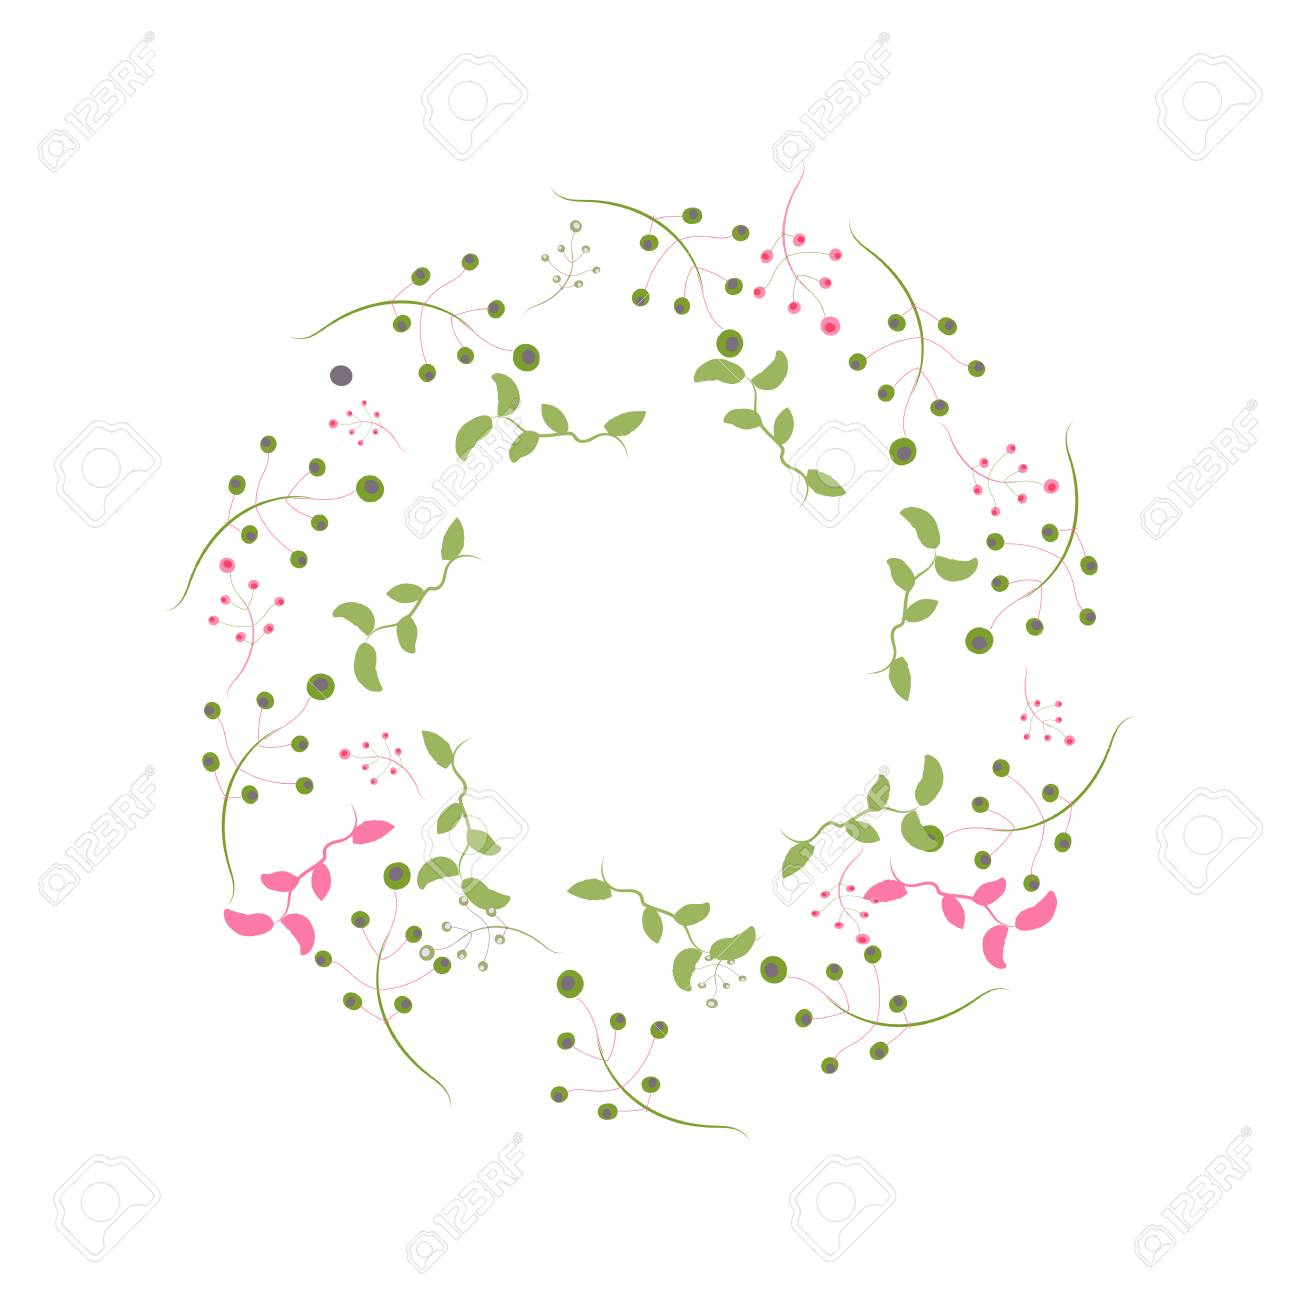 Wreath Perfect For Invitations Greeting Cards Quotes Blogs